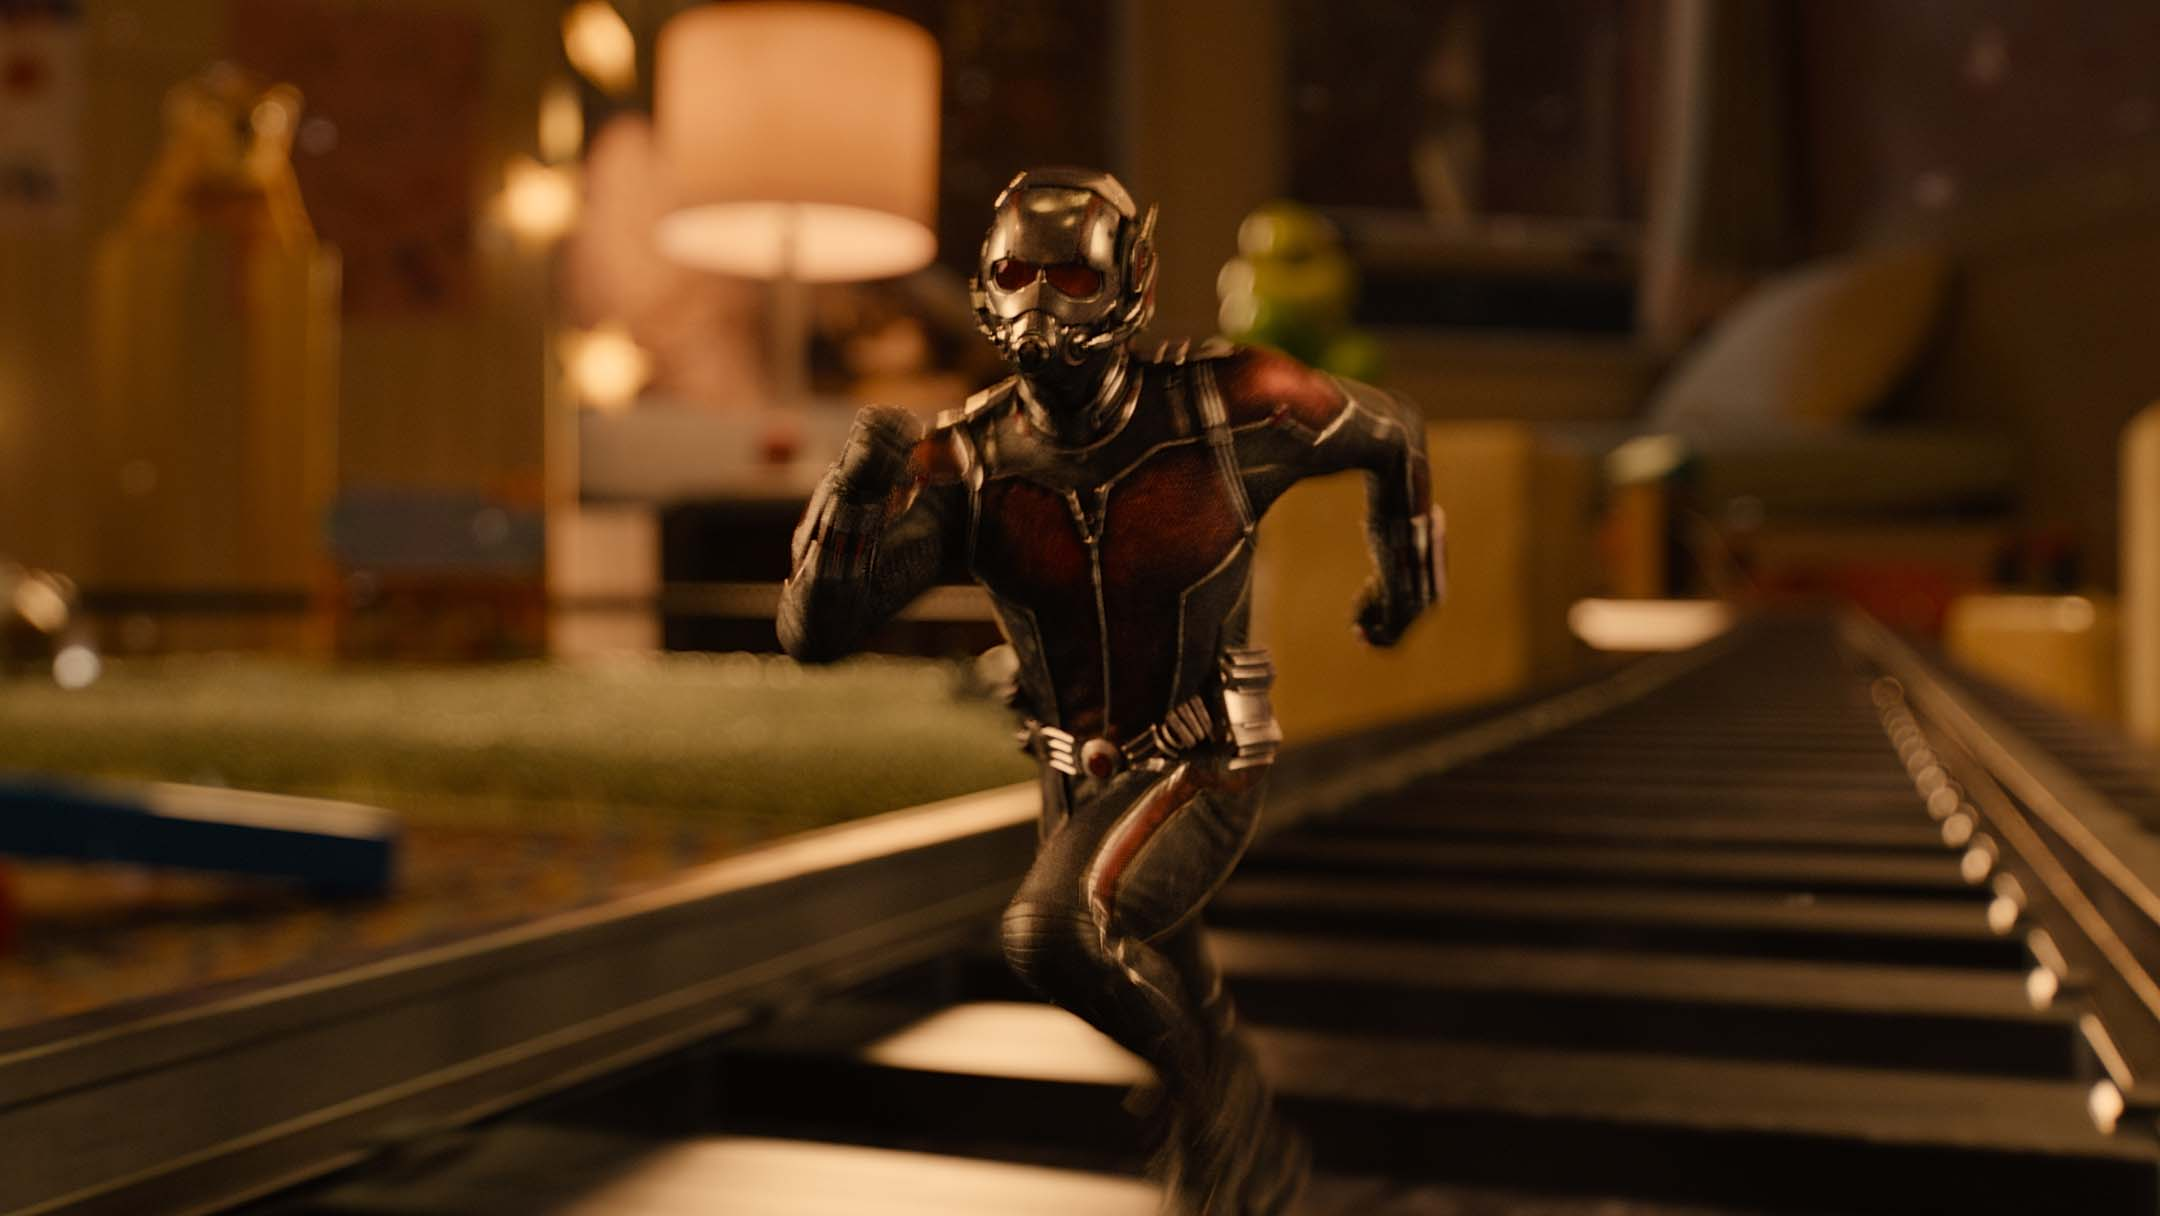 Ant Man is now available on Blu-ray and Digital HD © 2015 Marvel